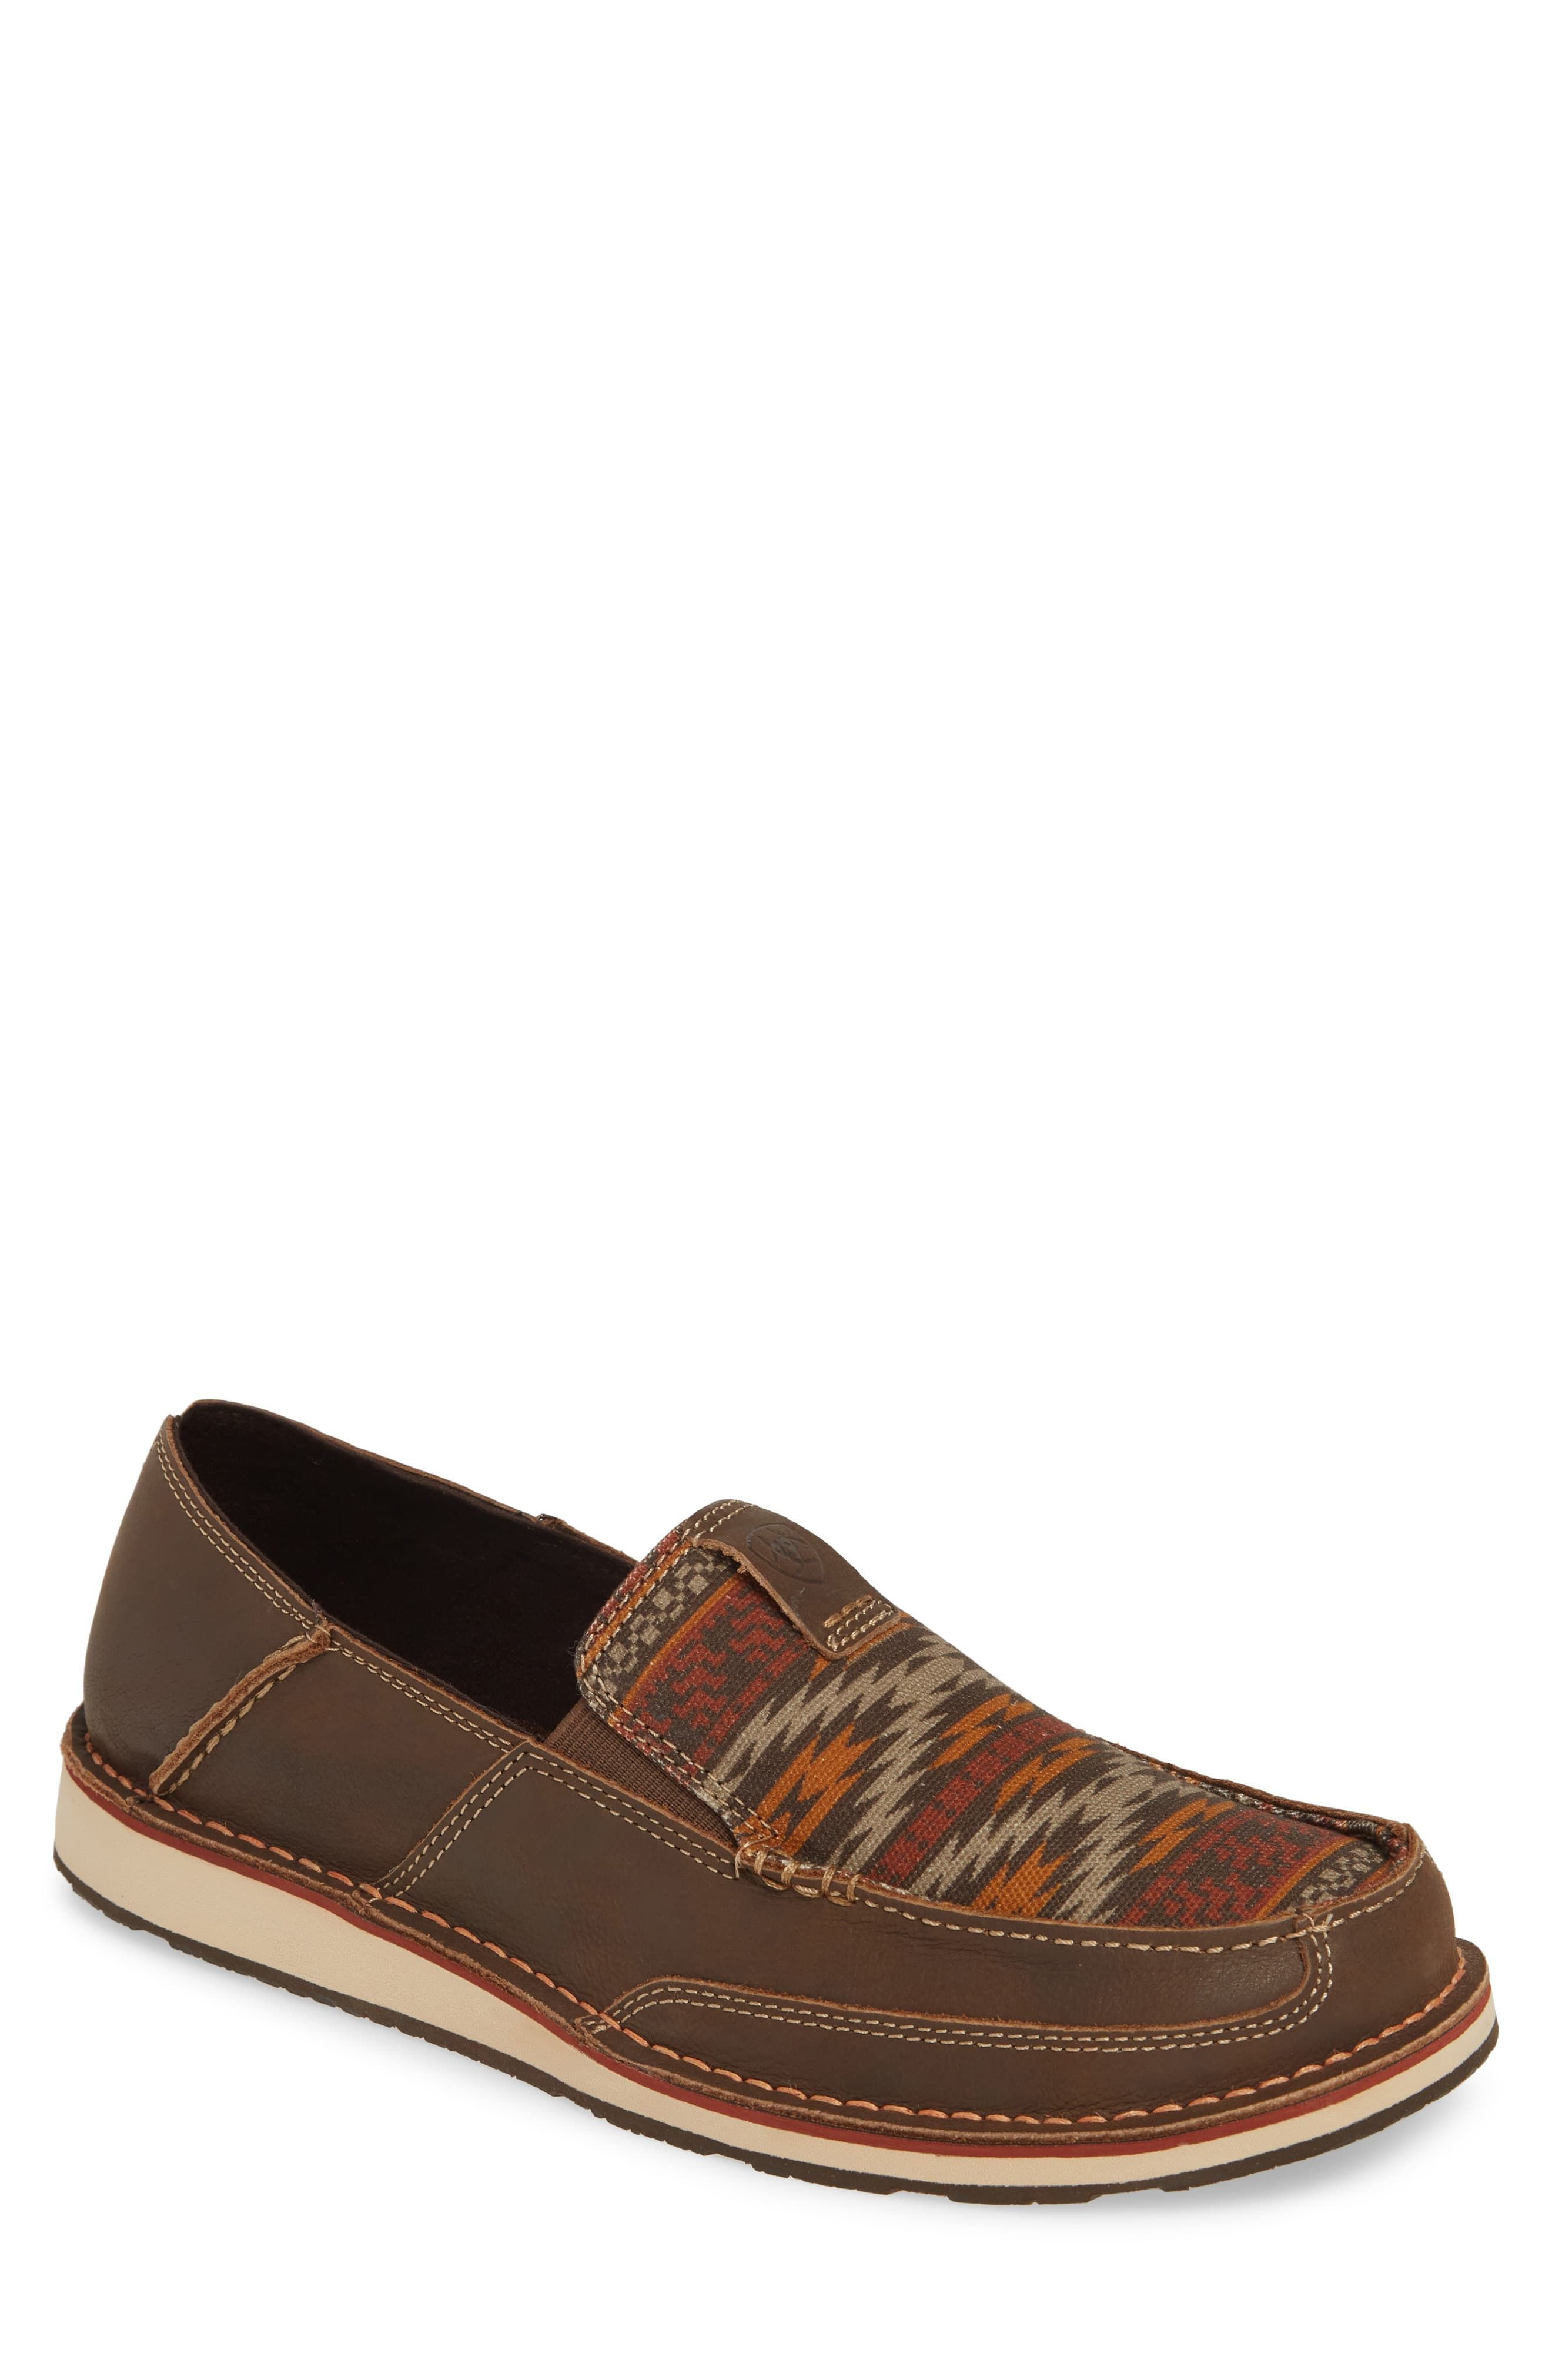 4115a88cdc00 Men's Ariat Cruiser Slip-On, Size 10.5 M - Brown in 2019 | Products ...